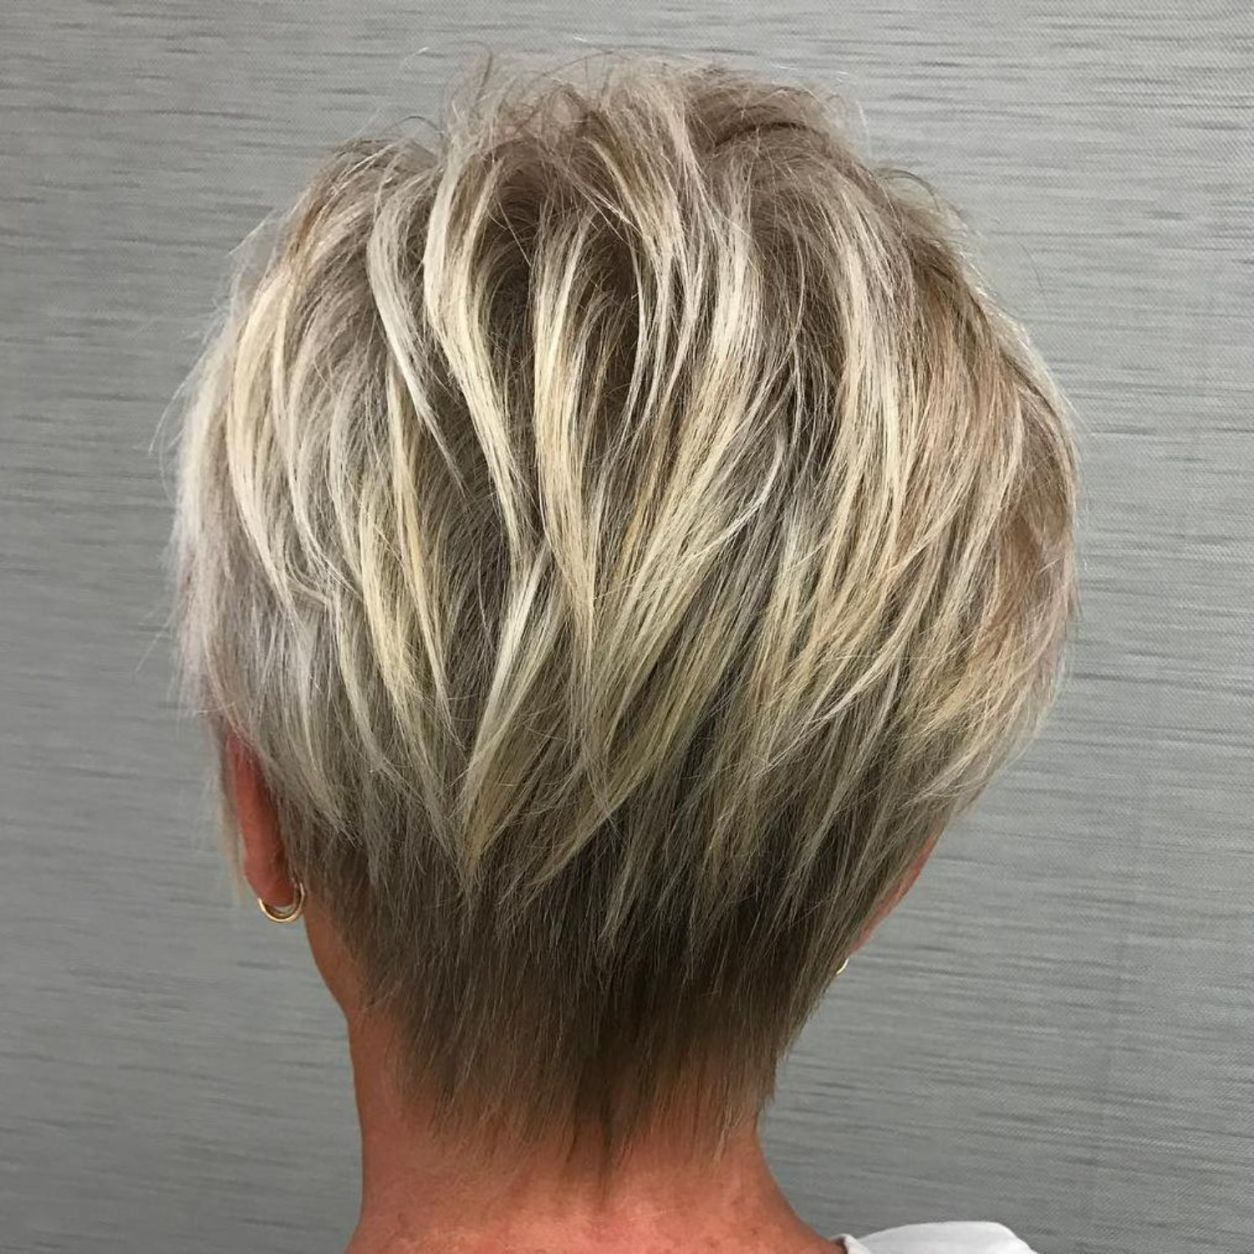 20 Cute Shaved Hairstyles For Women: 80 Best Modern Hairstyles And Haircuts For Women Over 50